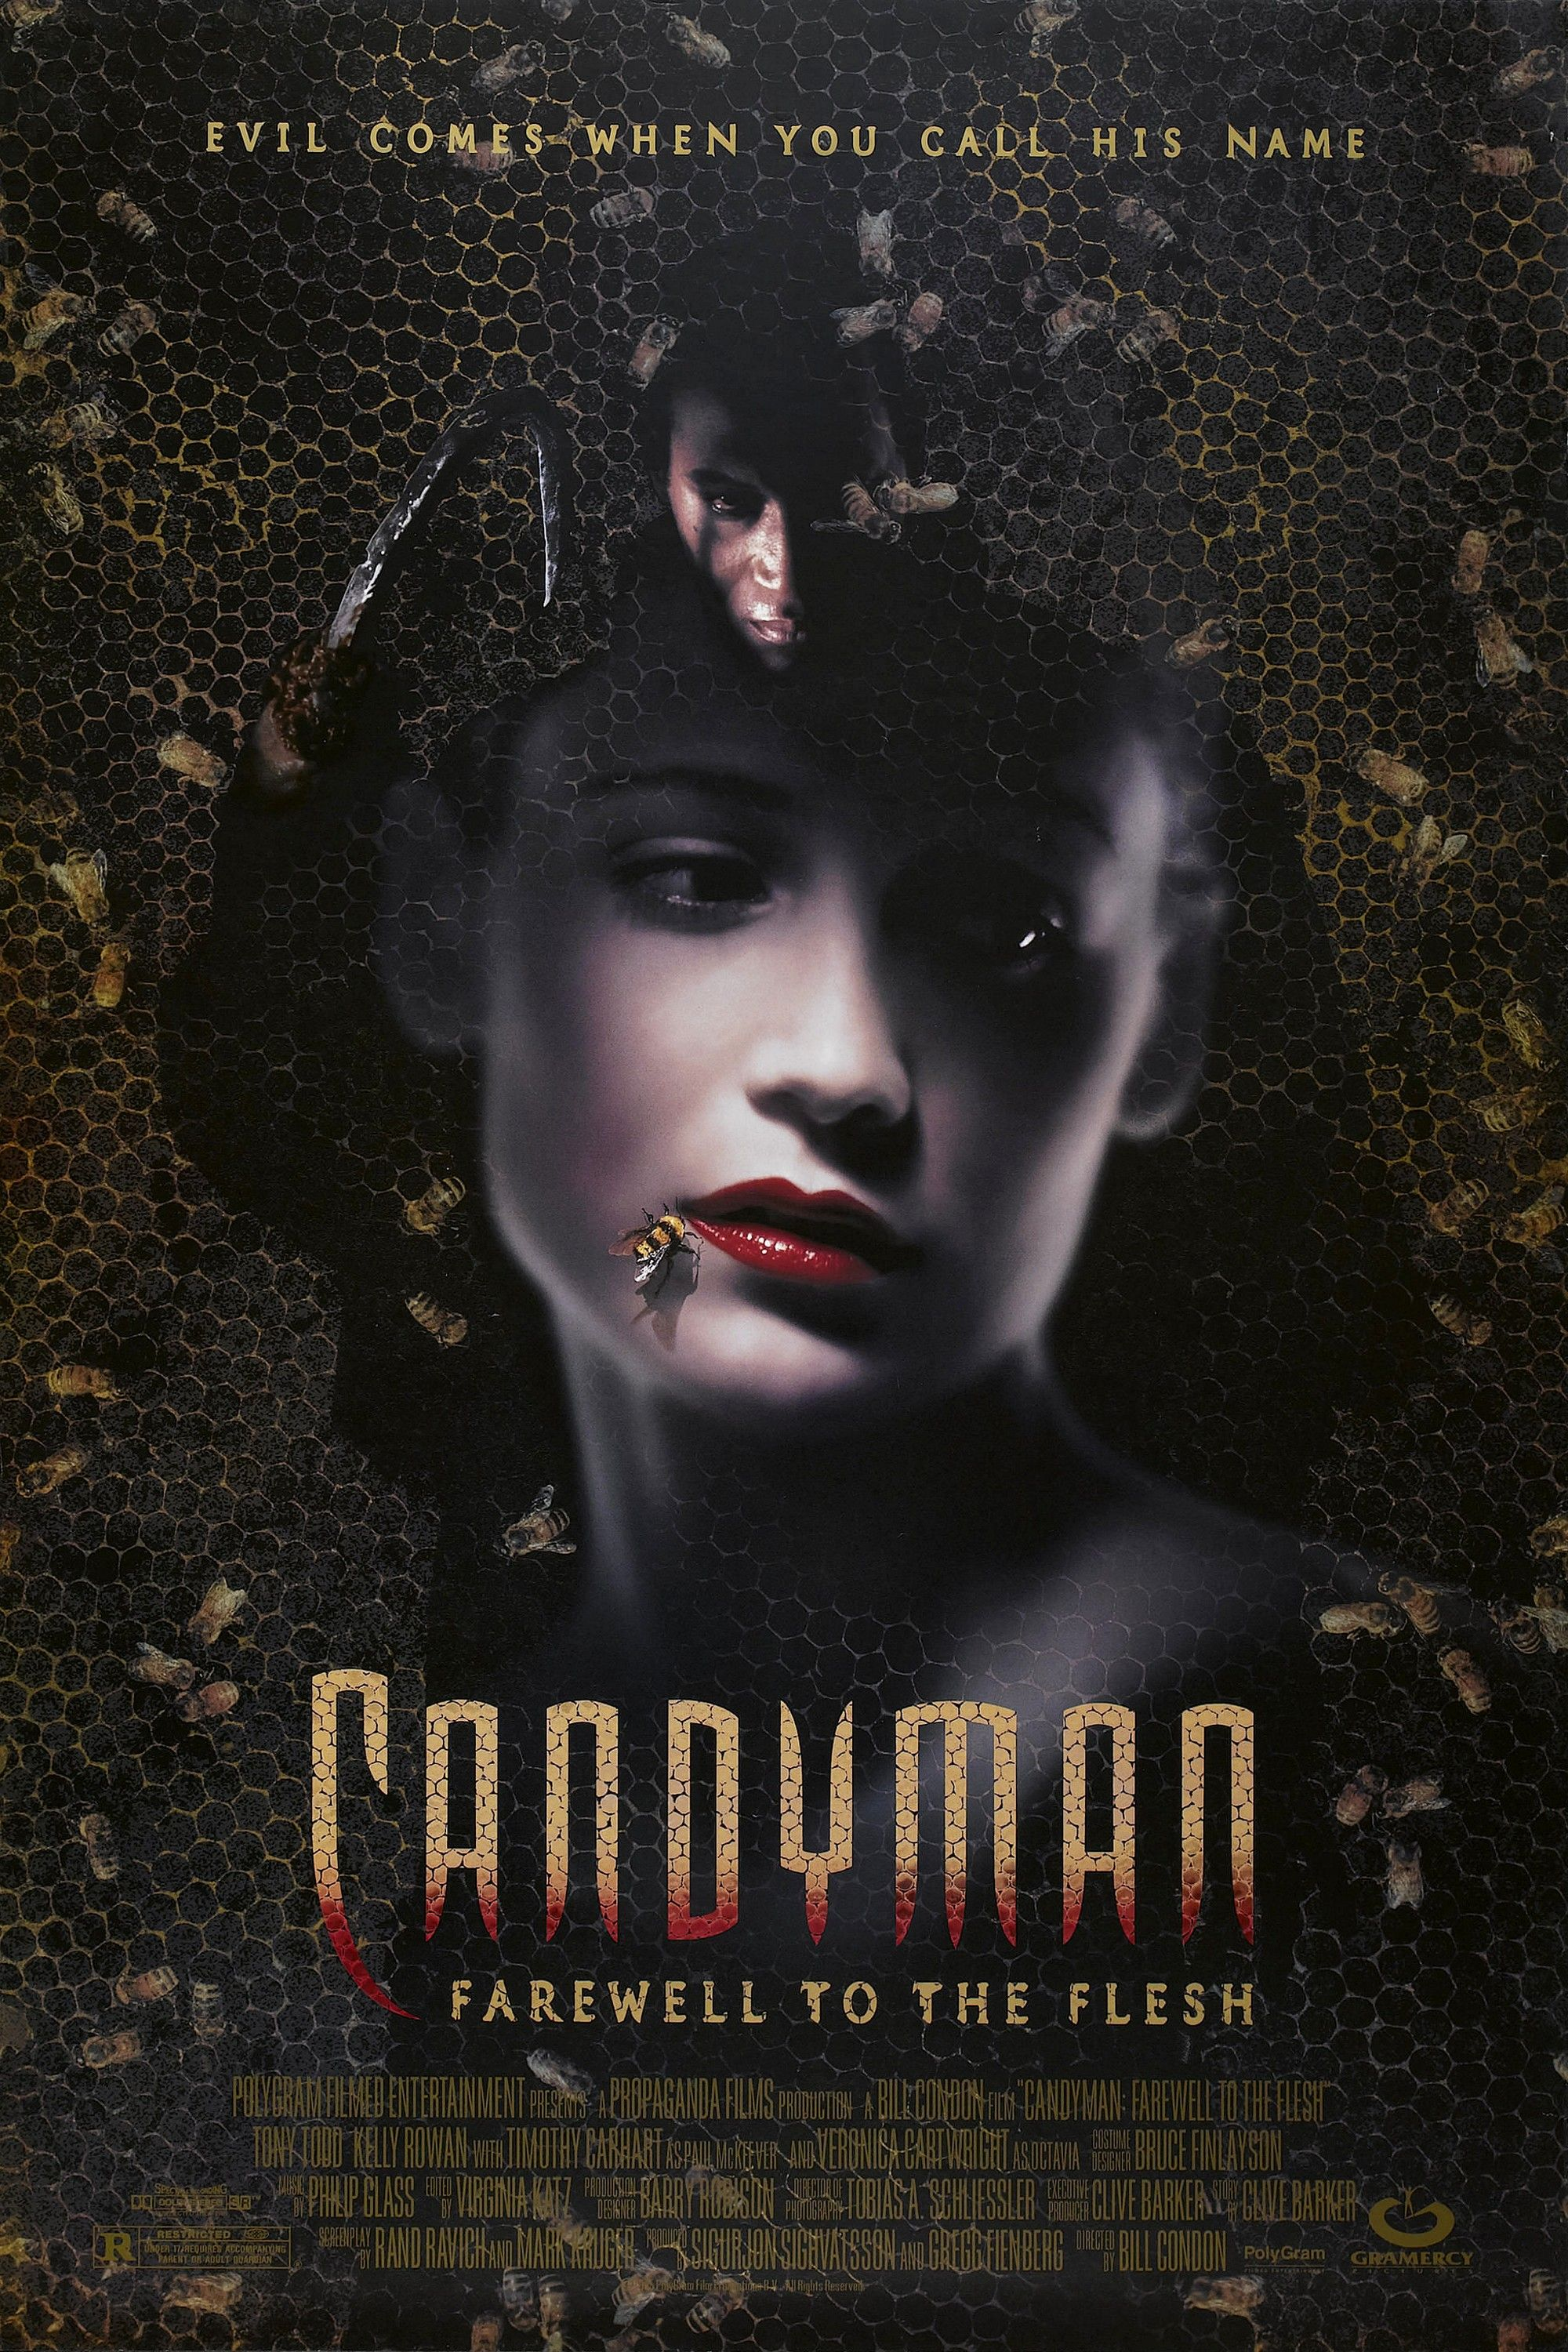 Candyman Ii Farewell To The Flesh 1995 Movie Posters Short Circuit 27x40 Poster 1986 Best Horror Movies Films